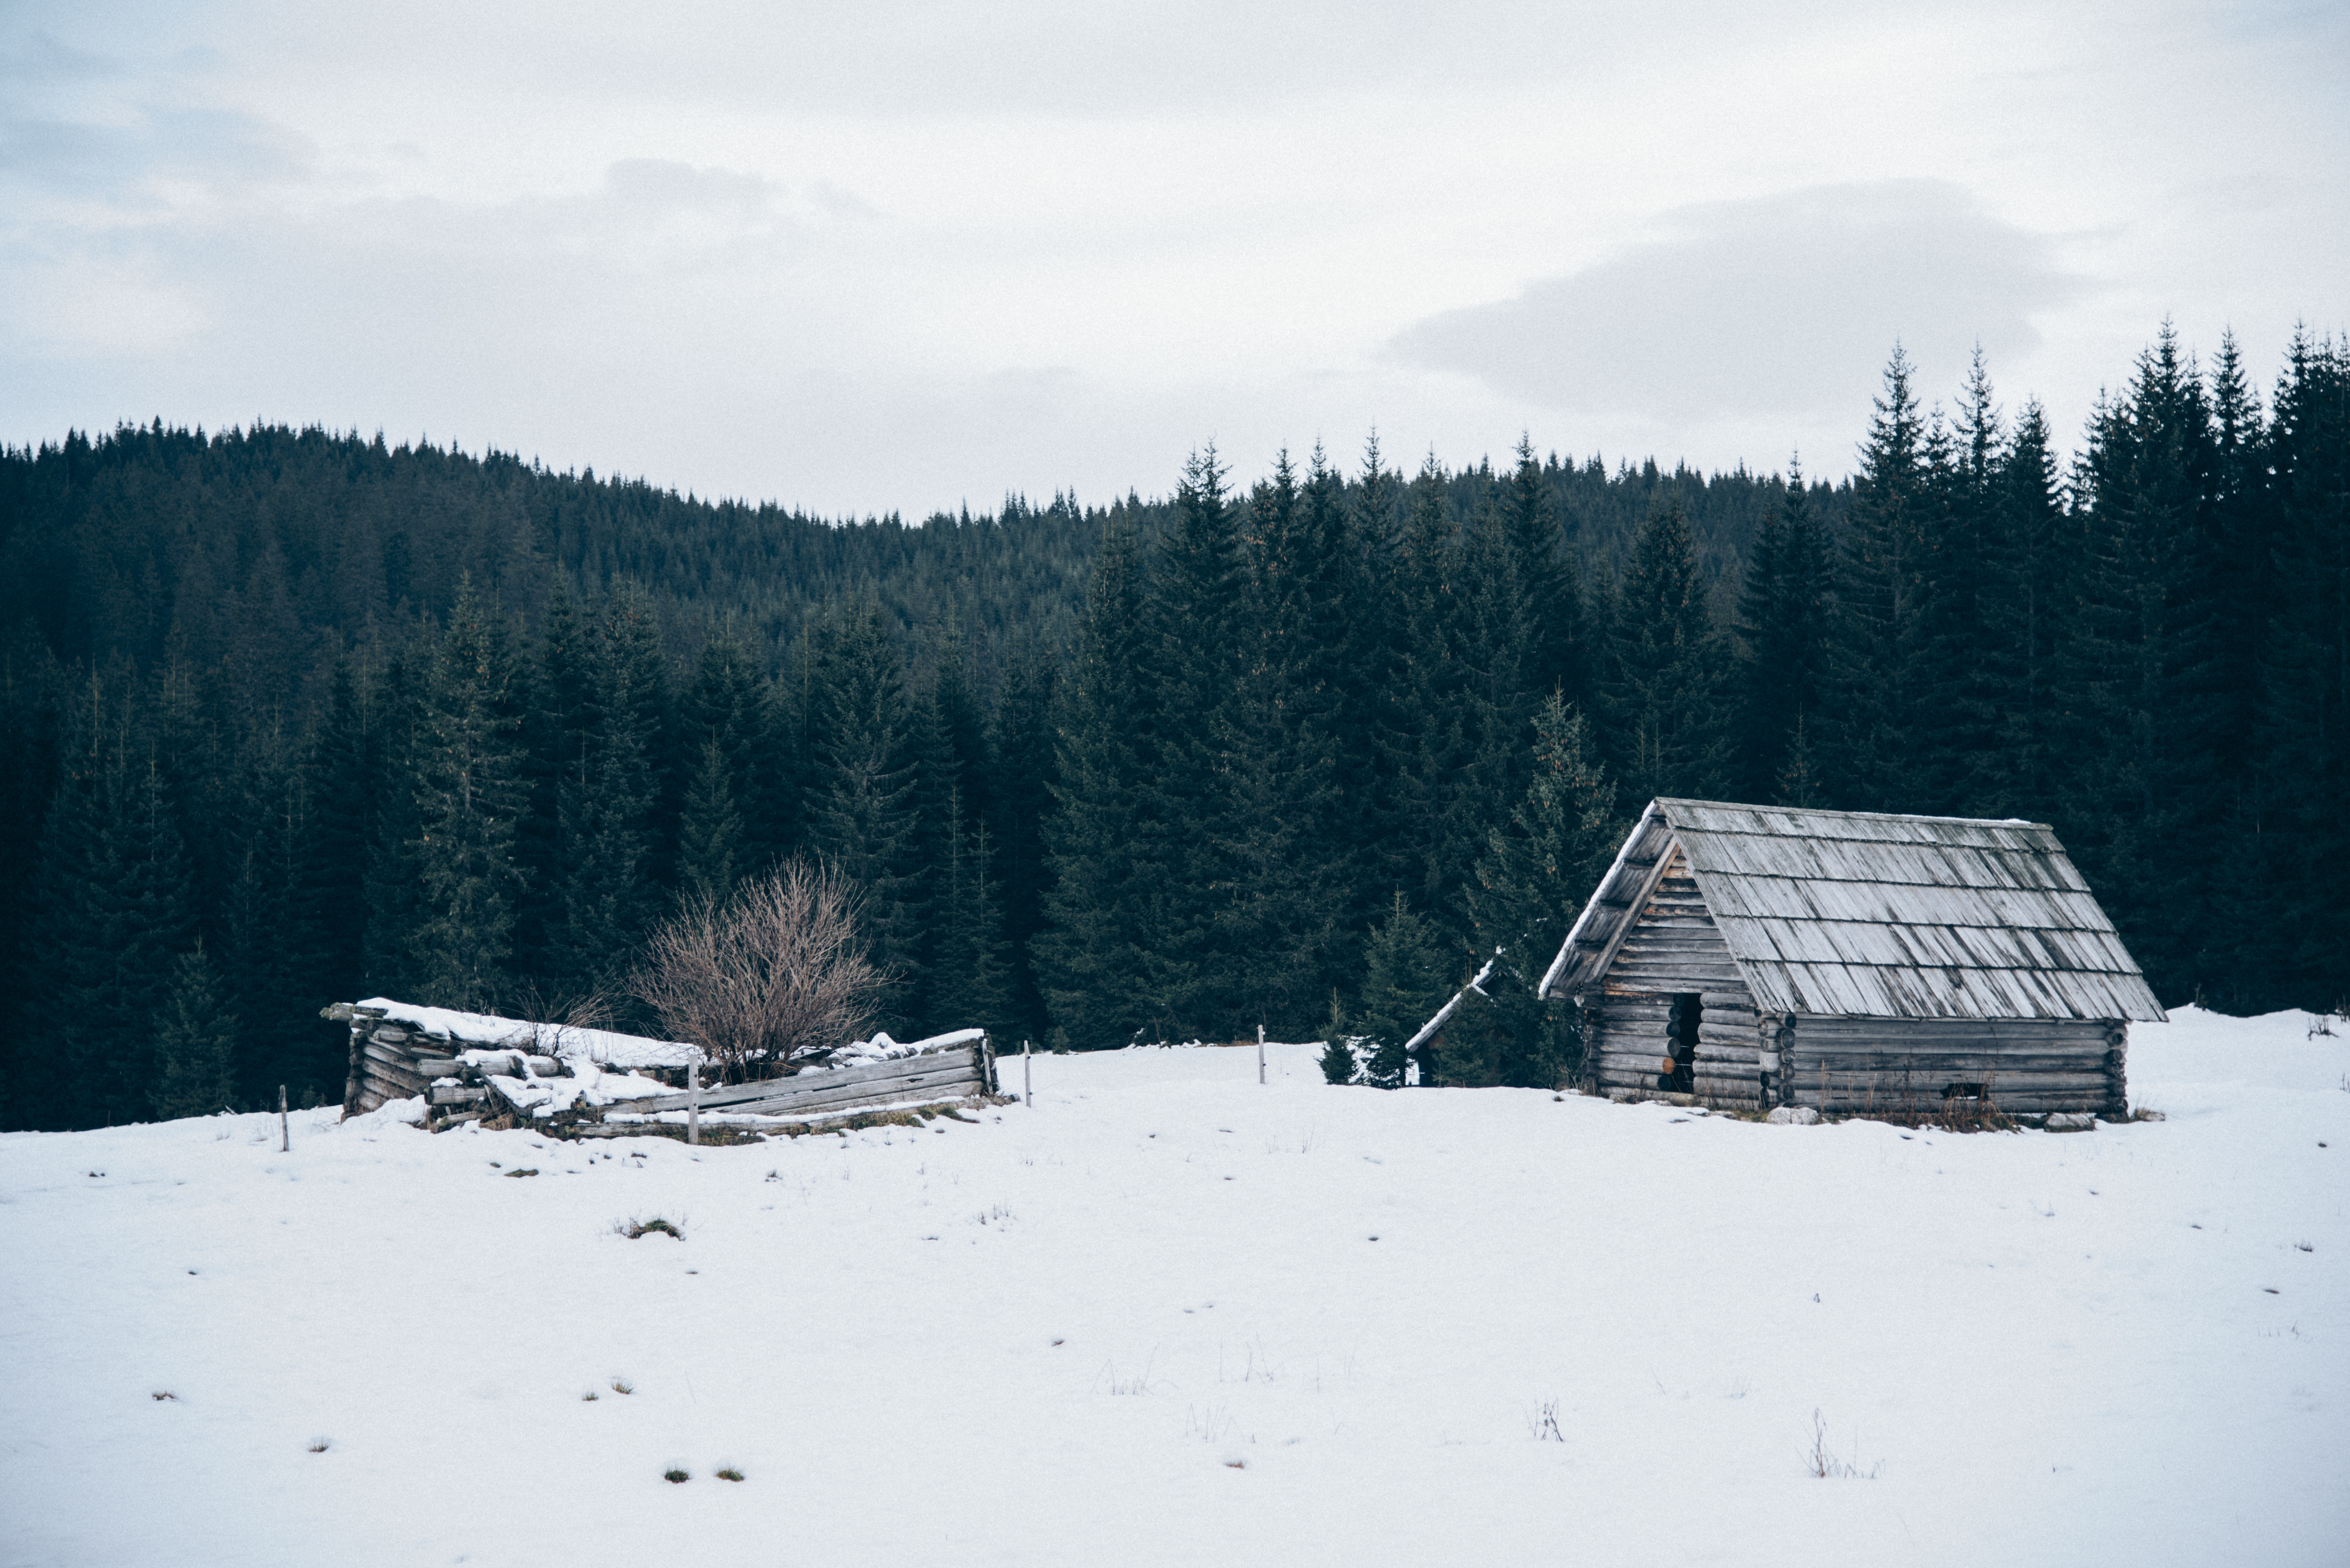 A wooden cabin and a derelict shack near a pine forest on a winter's day